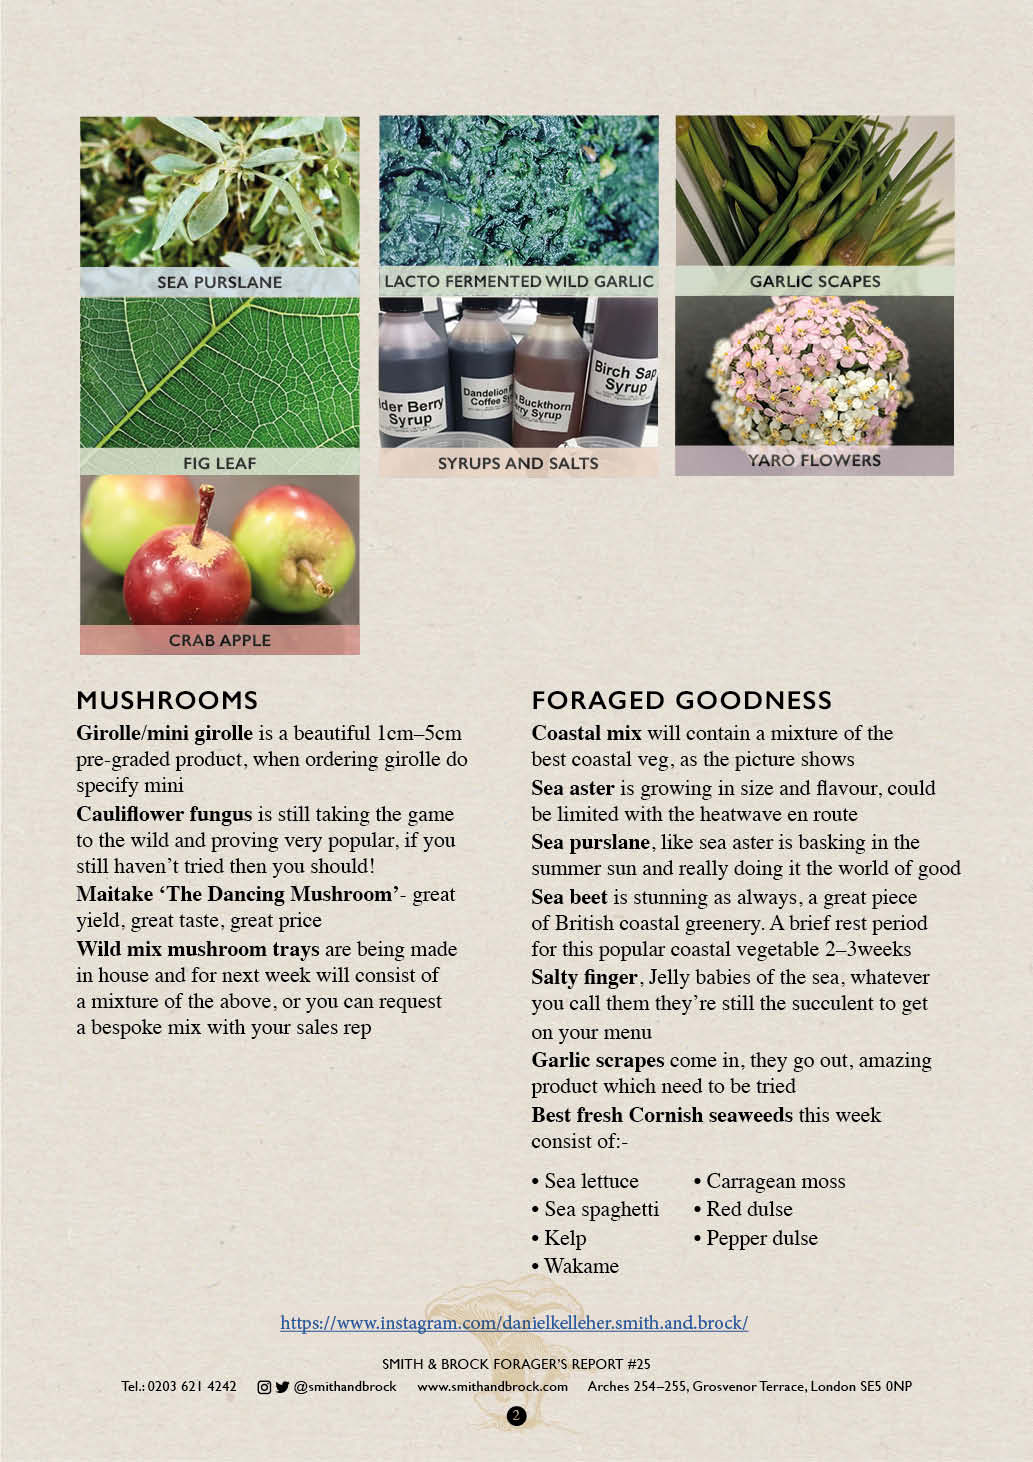 Smith&Brock Foraged Products Report 23 Sep 2019 252